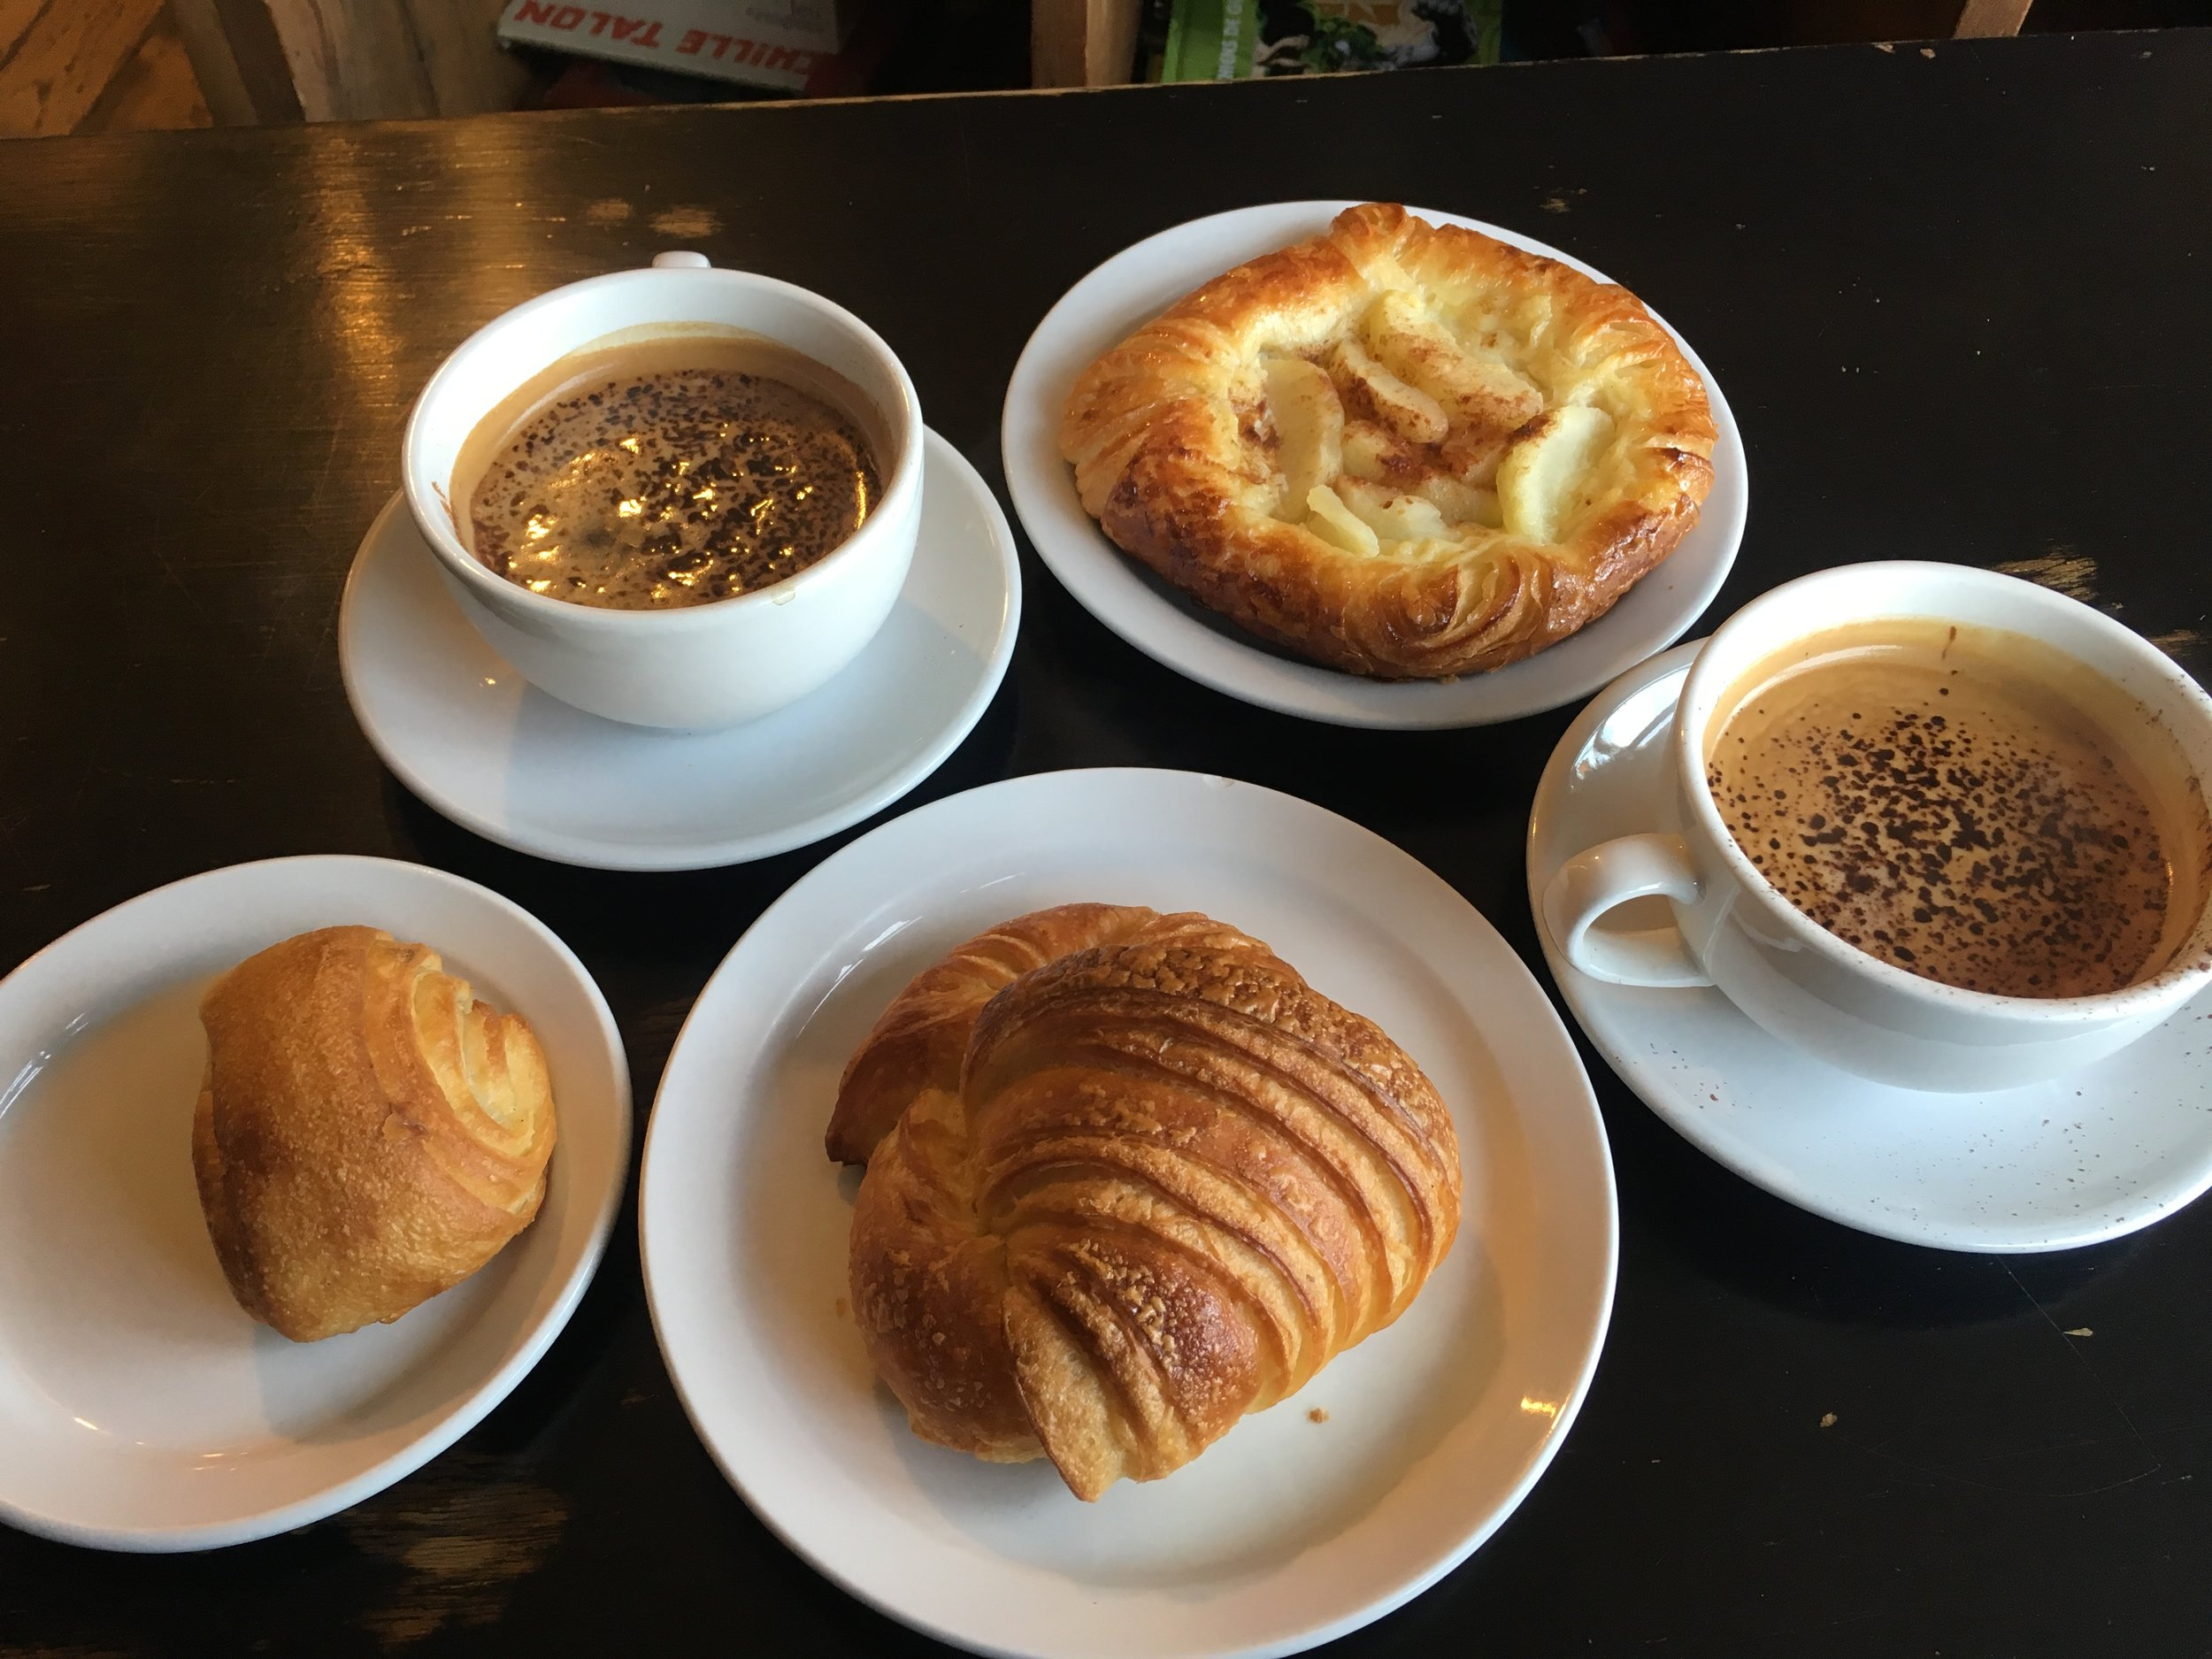 Pastries And Coffee At La Pétrie